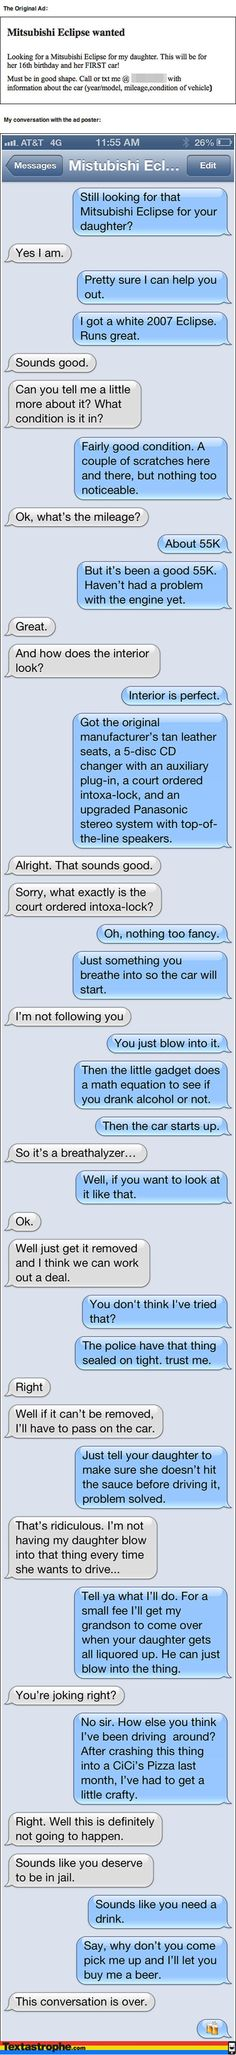 The 11 Most Epic Texting Pranks Of All Time